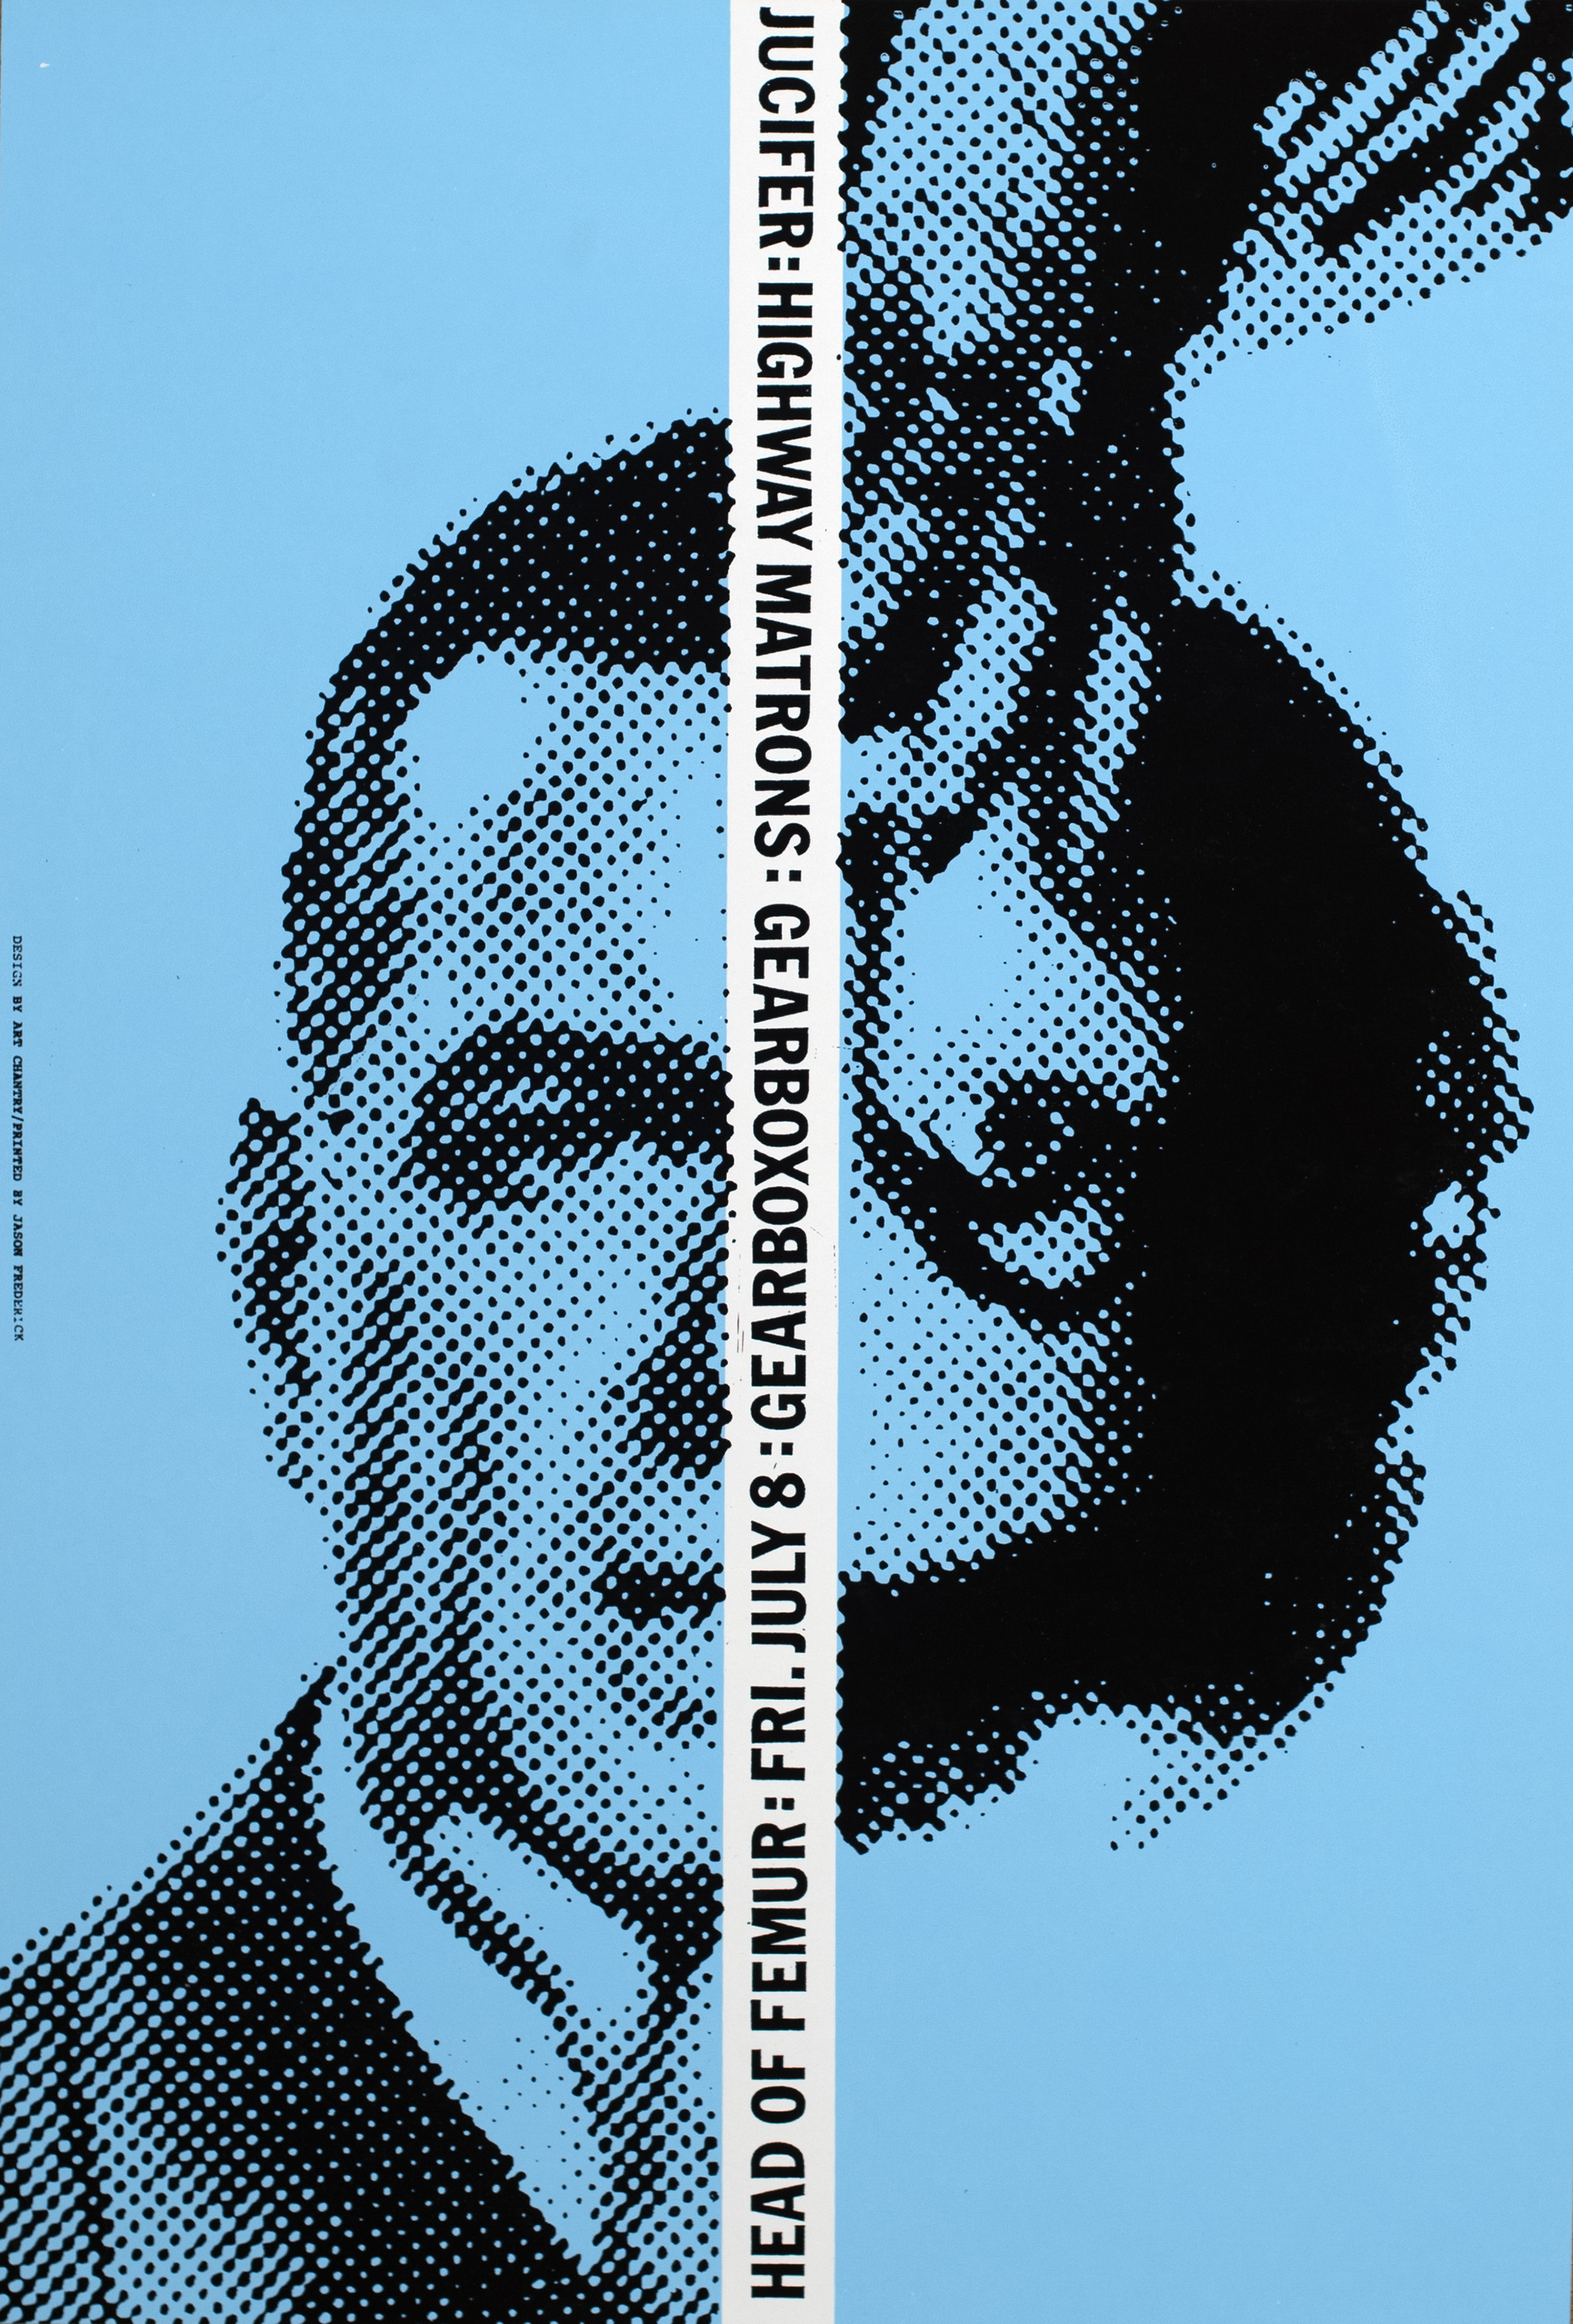 Two halftone images of half a man's face and half a woman's face, upside down, against a blue background. In the center, a vertical line of band names, venue, performance date.